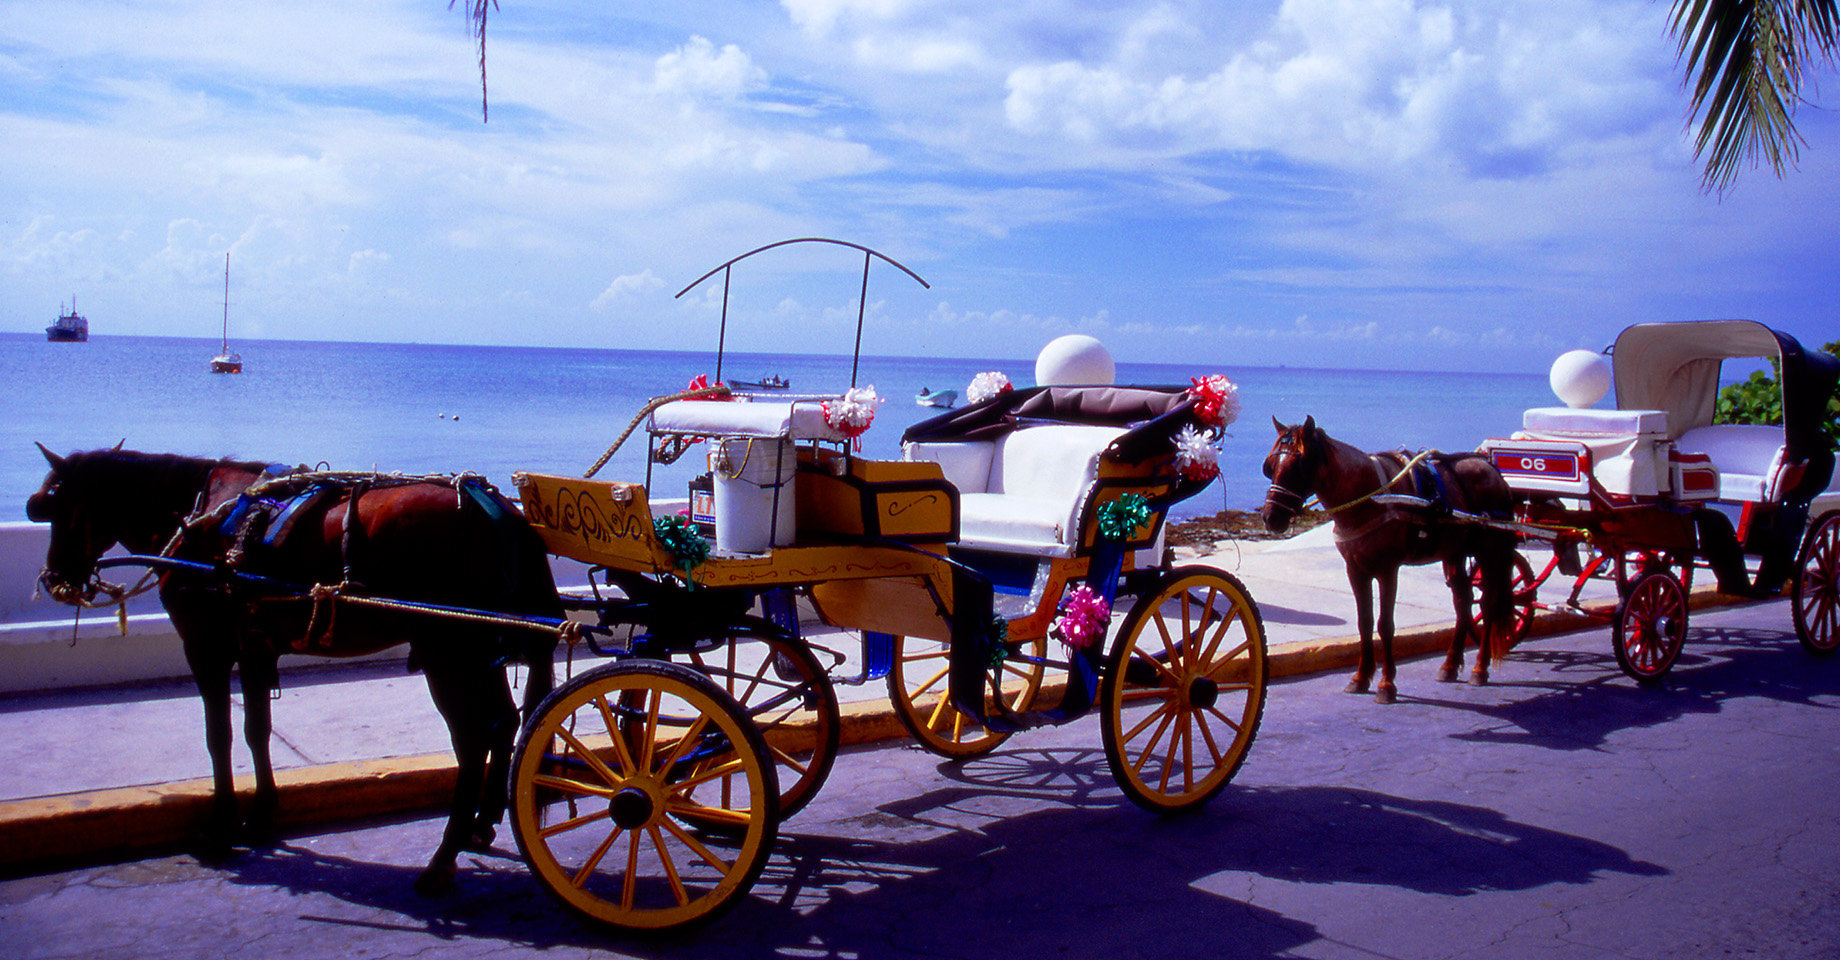 Horsedrawn Carriage Cozumel